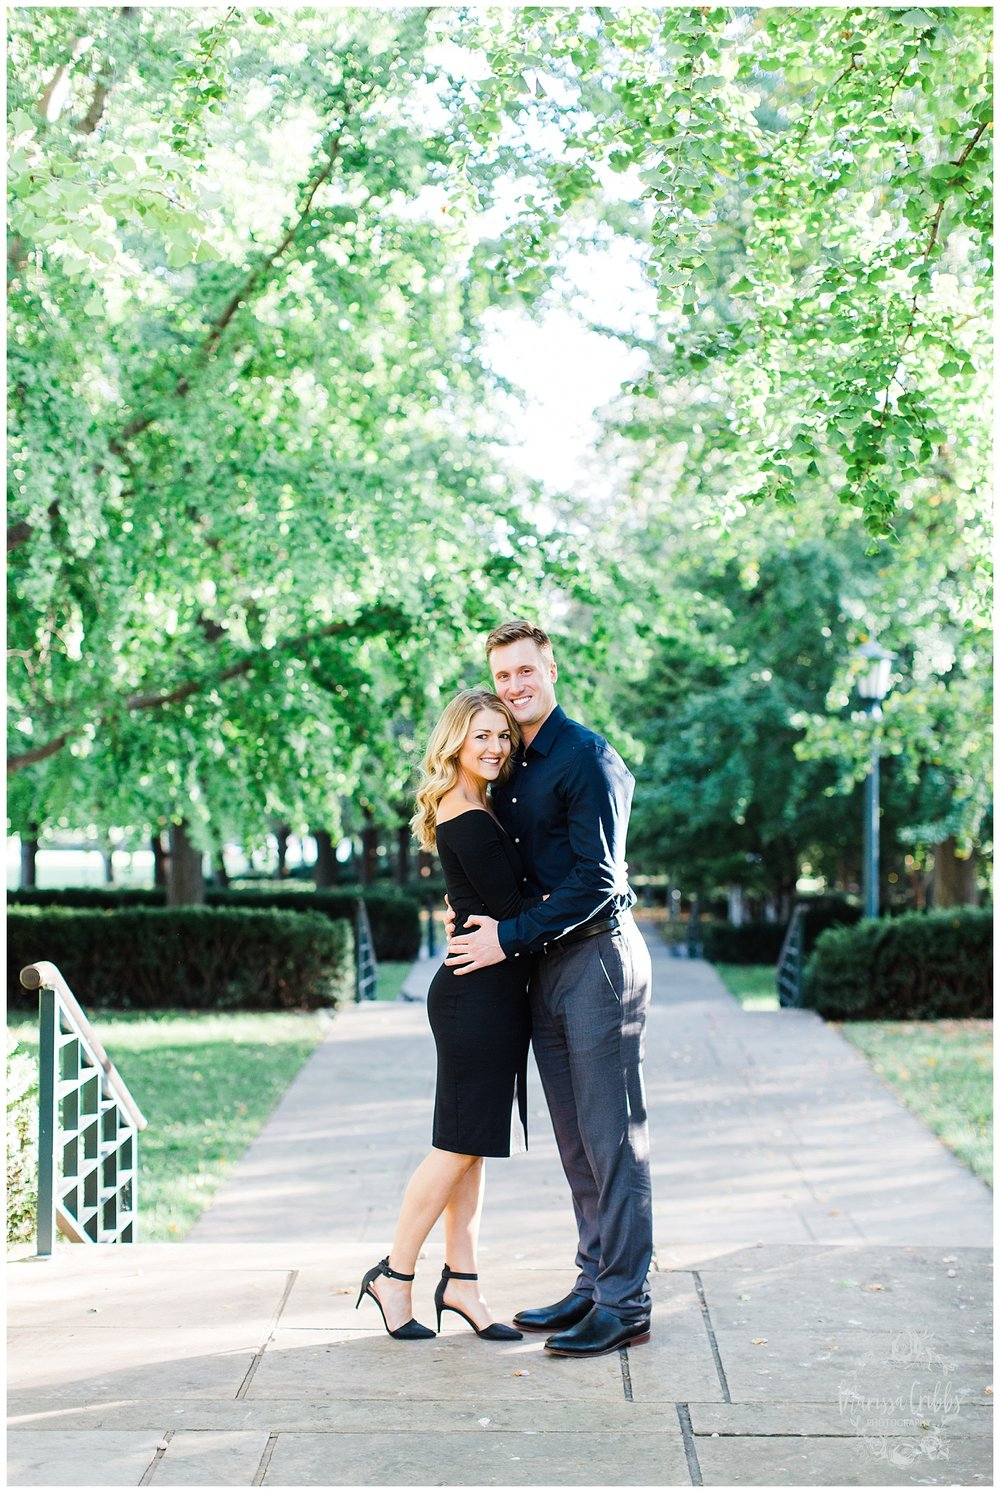 KATE & NATE ENGAGEMENT | NELSON ATKINS | MARISSA CRIBBS PHOTOGRAPHY_3559.jpg